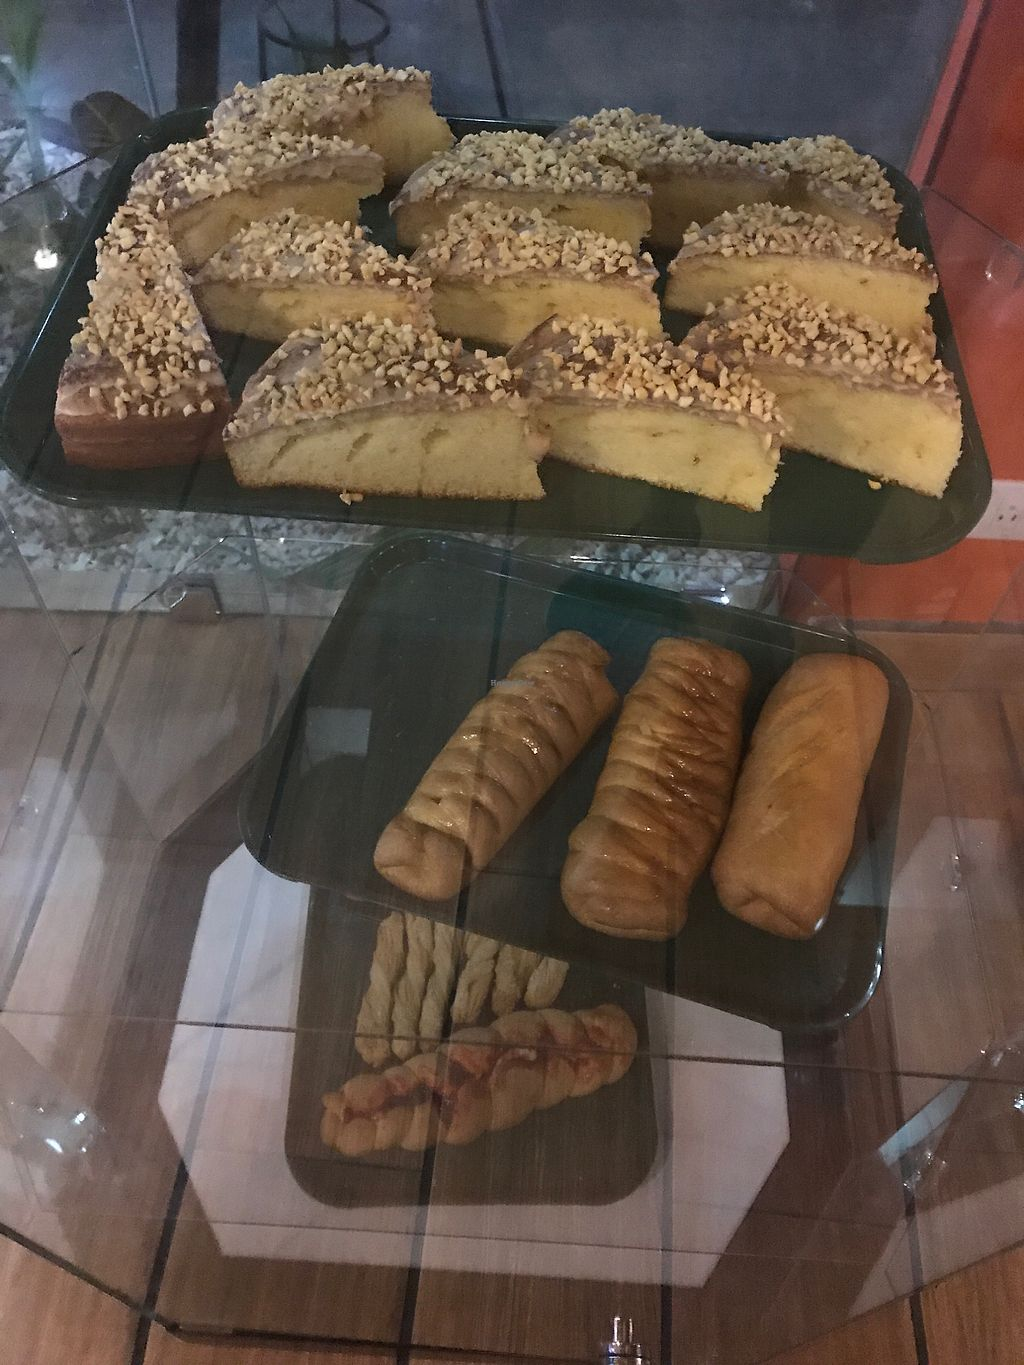 """Photo of Veggie Sub  by <a href=""""/members/profile/GaryBartlett"""">GaryBartlett</a> <br/>Deserts  <br/> April 2, 2018  - <a href='/contact/abuse/image/109220/379658'>Report</a>"""